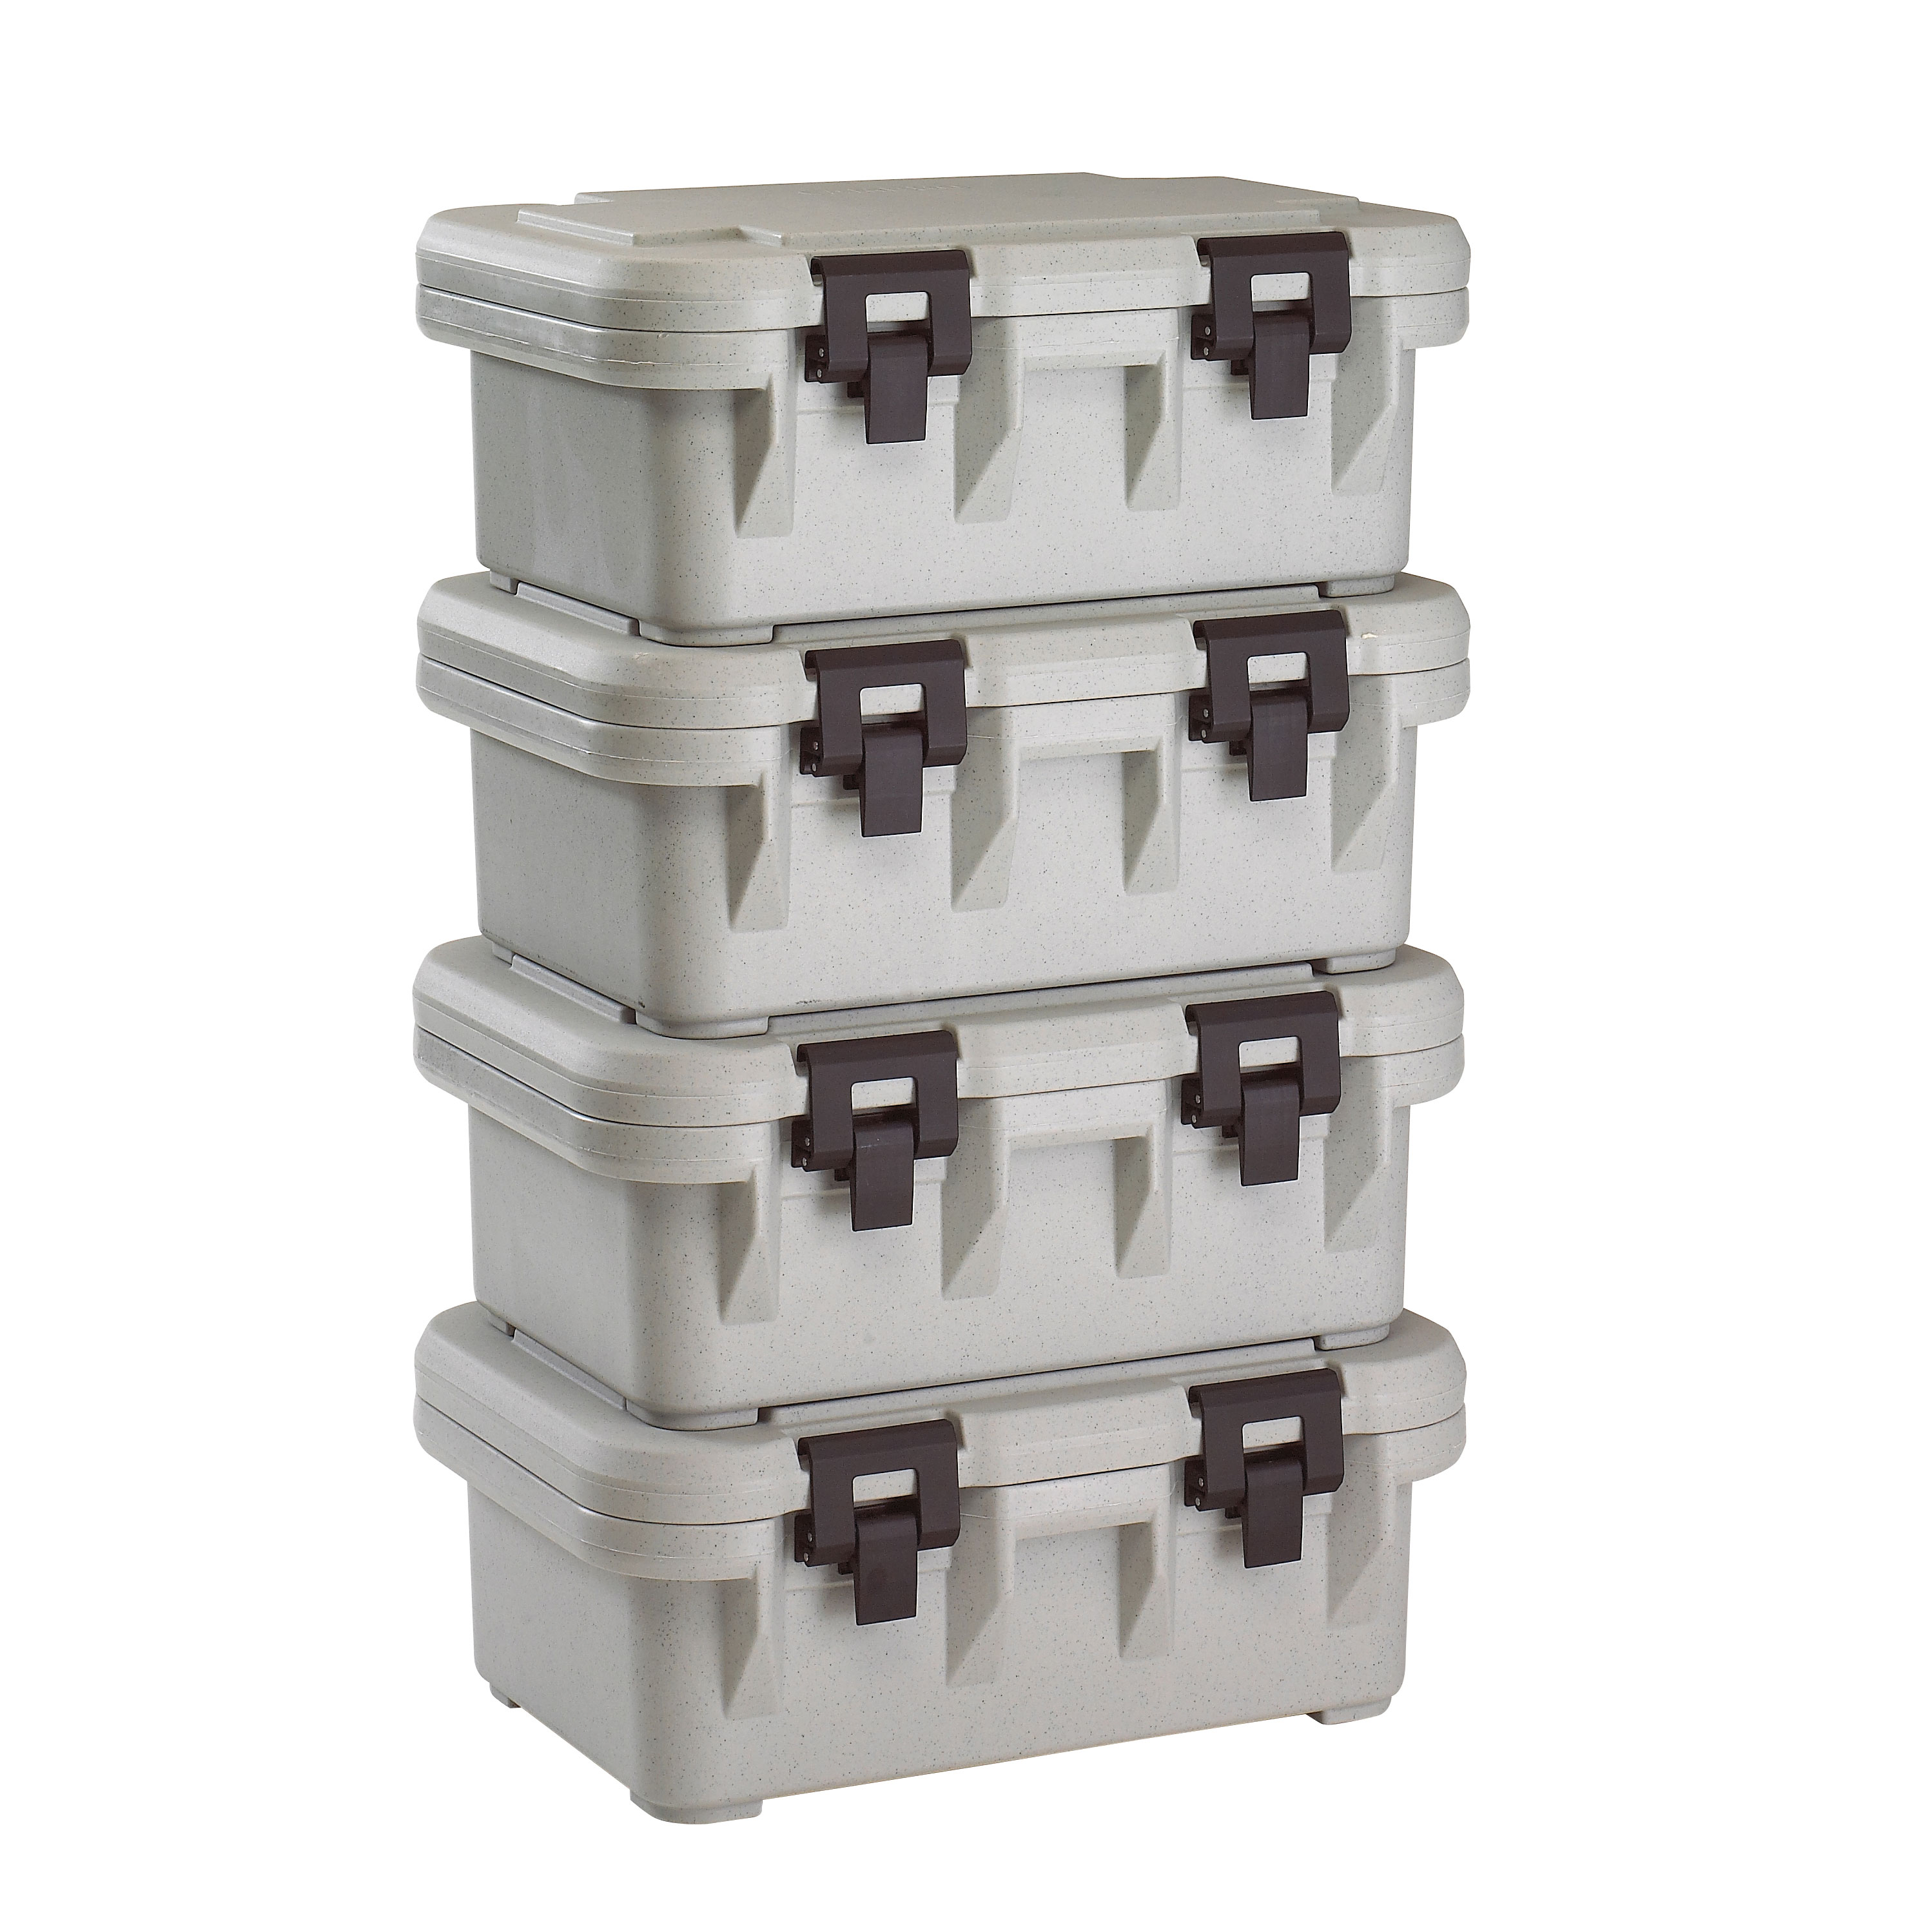 Cambro UPCS160480 food carrier, insulated plastic